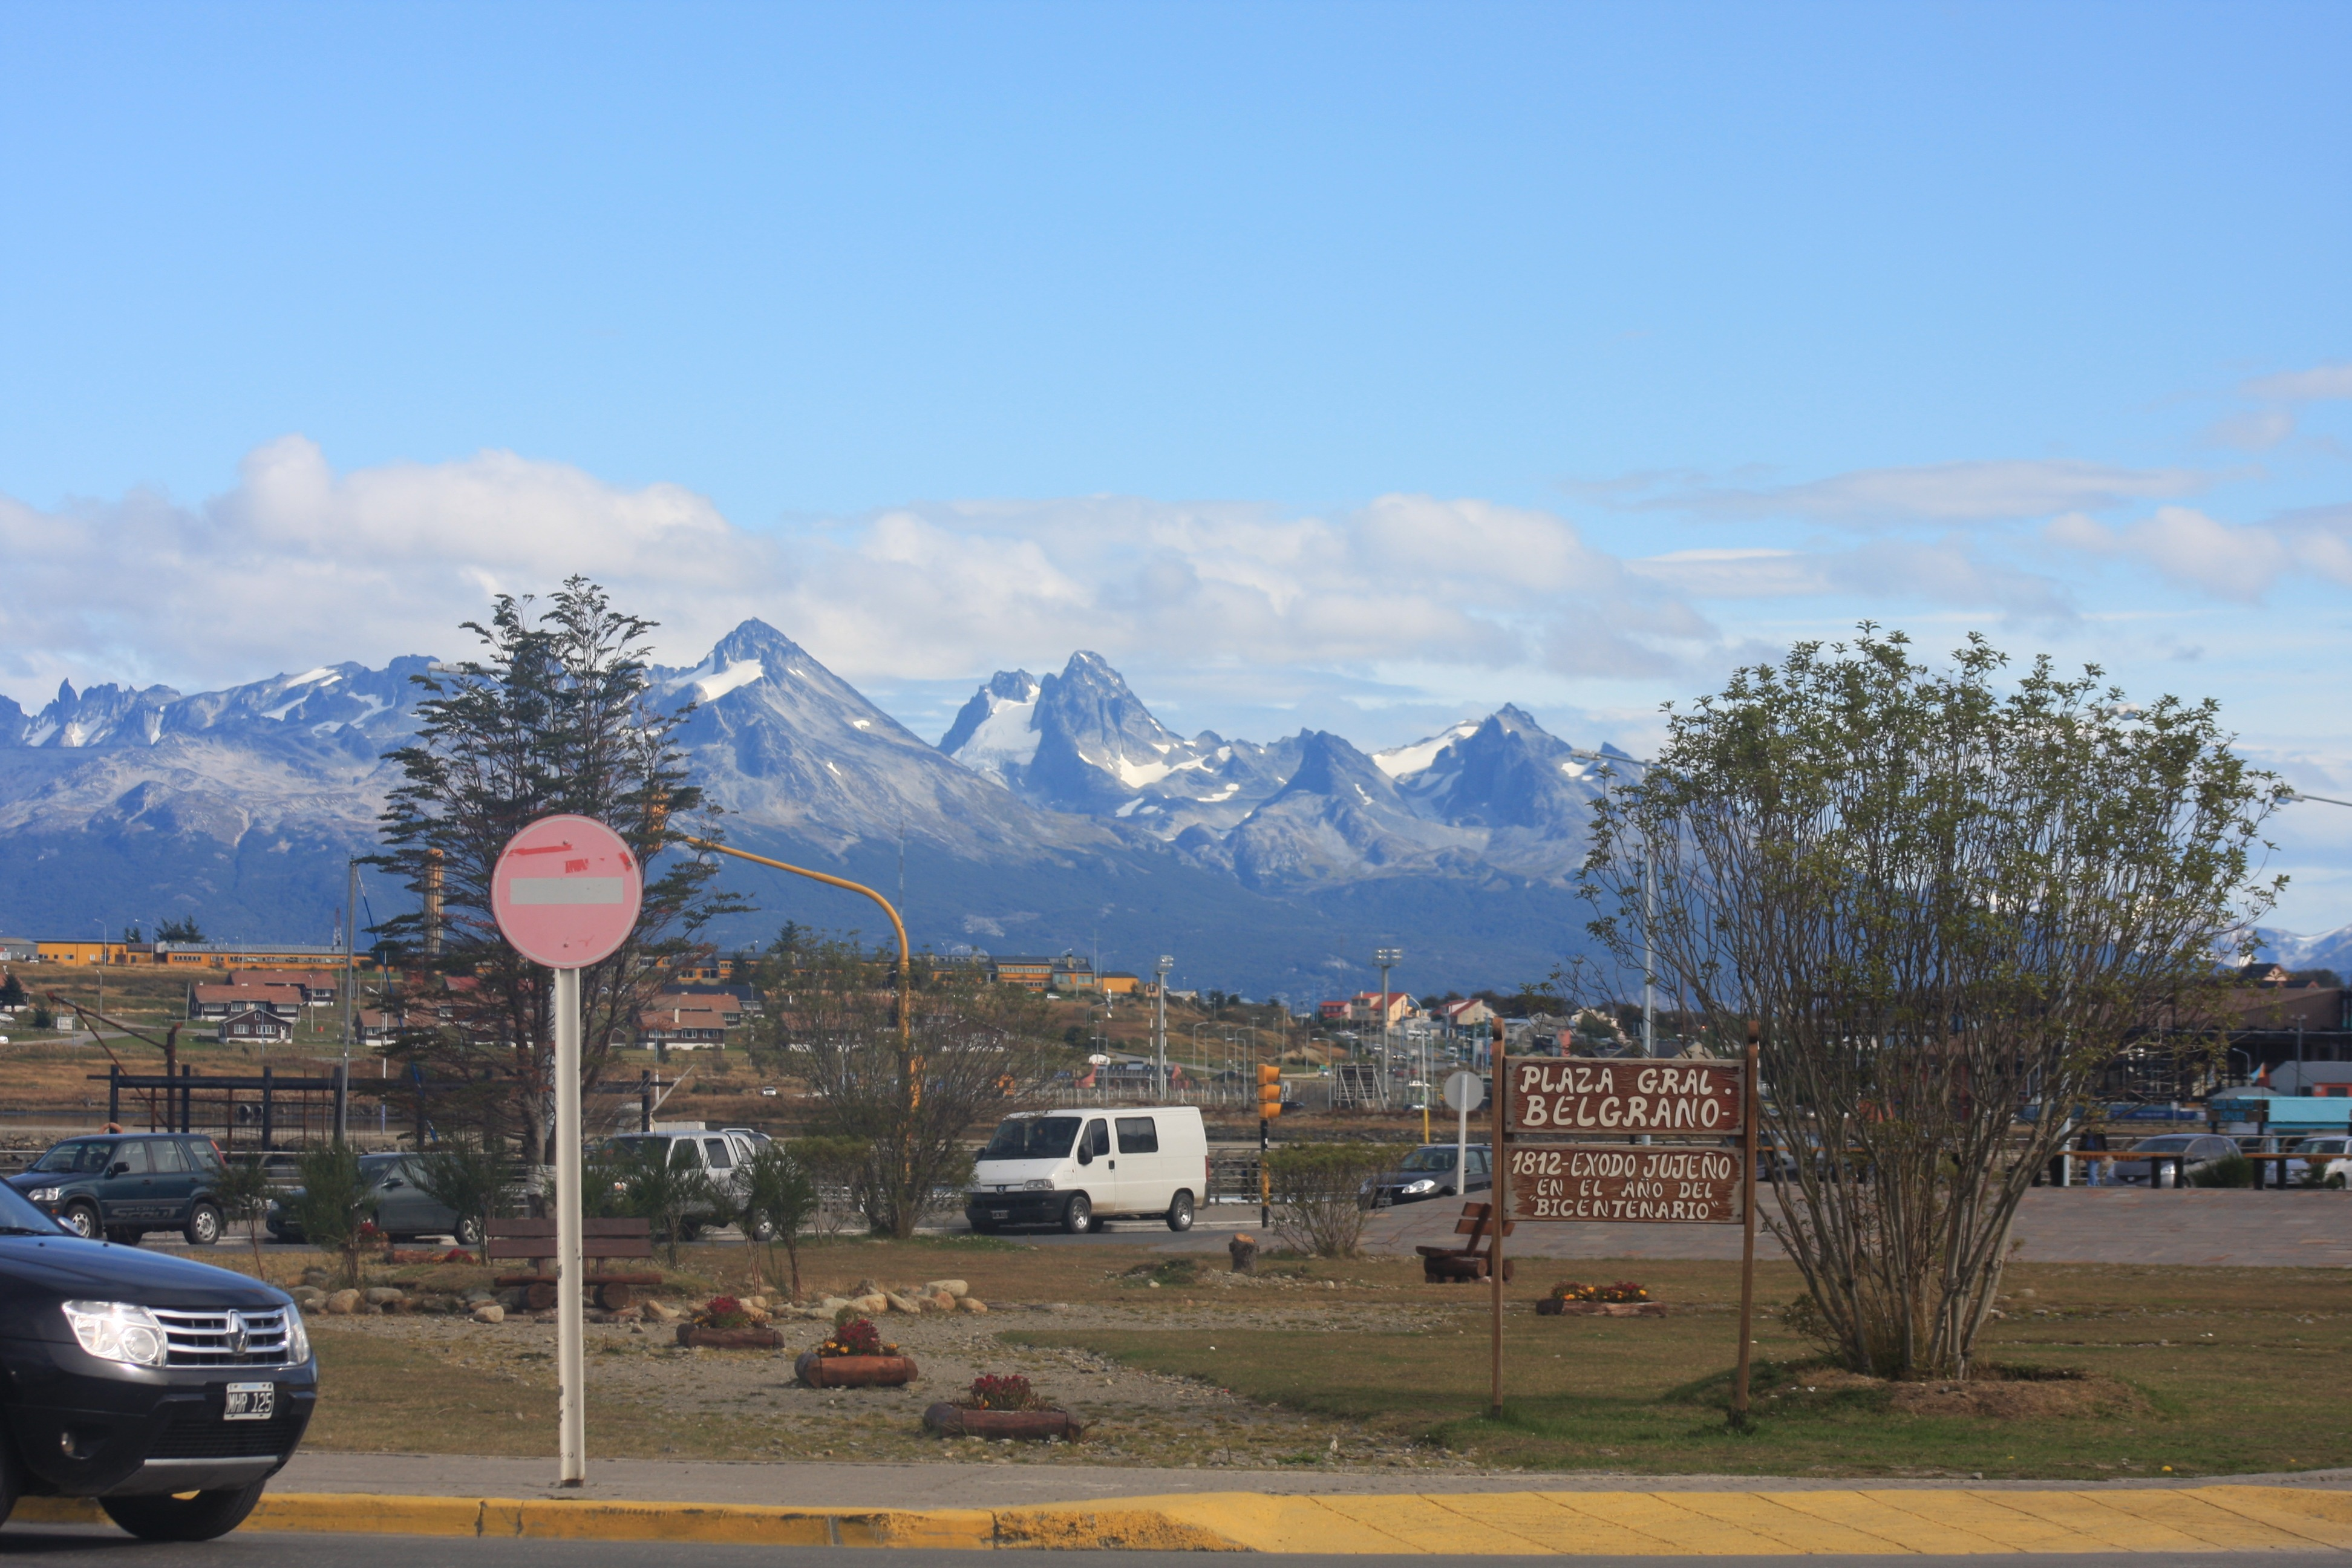 Free download high resolution image - free image free photo free stock image public domain picture -San Martin de los Andes Patagonia, Argentina